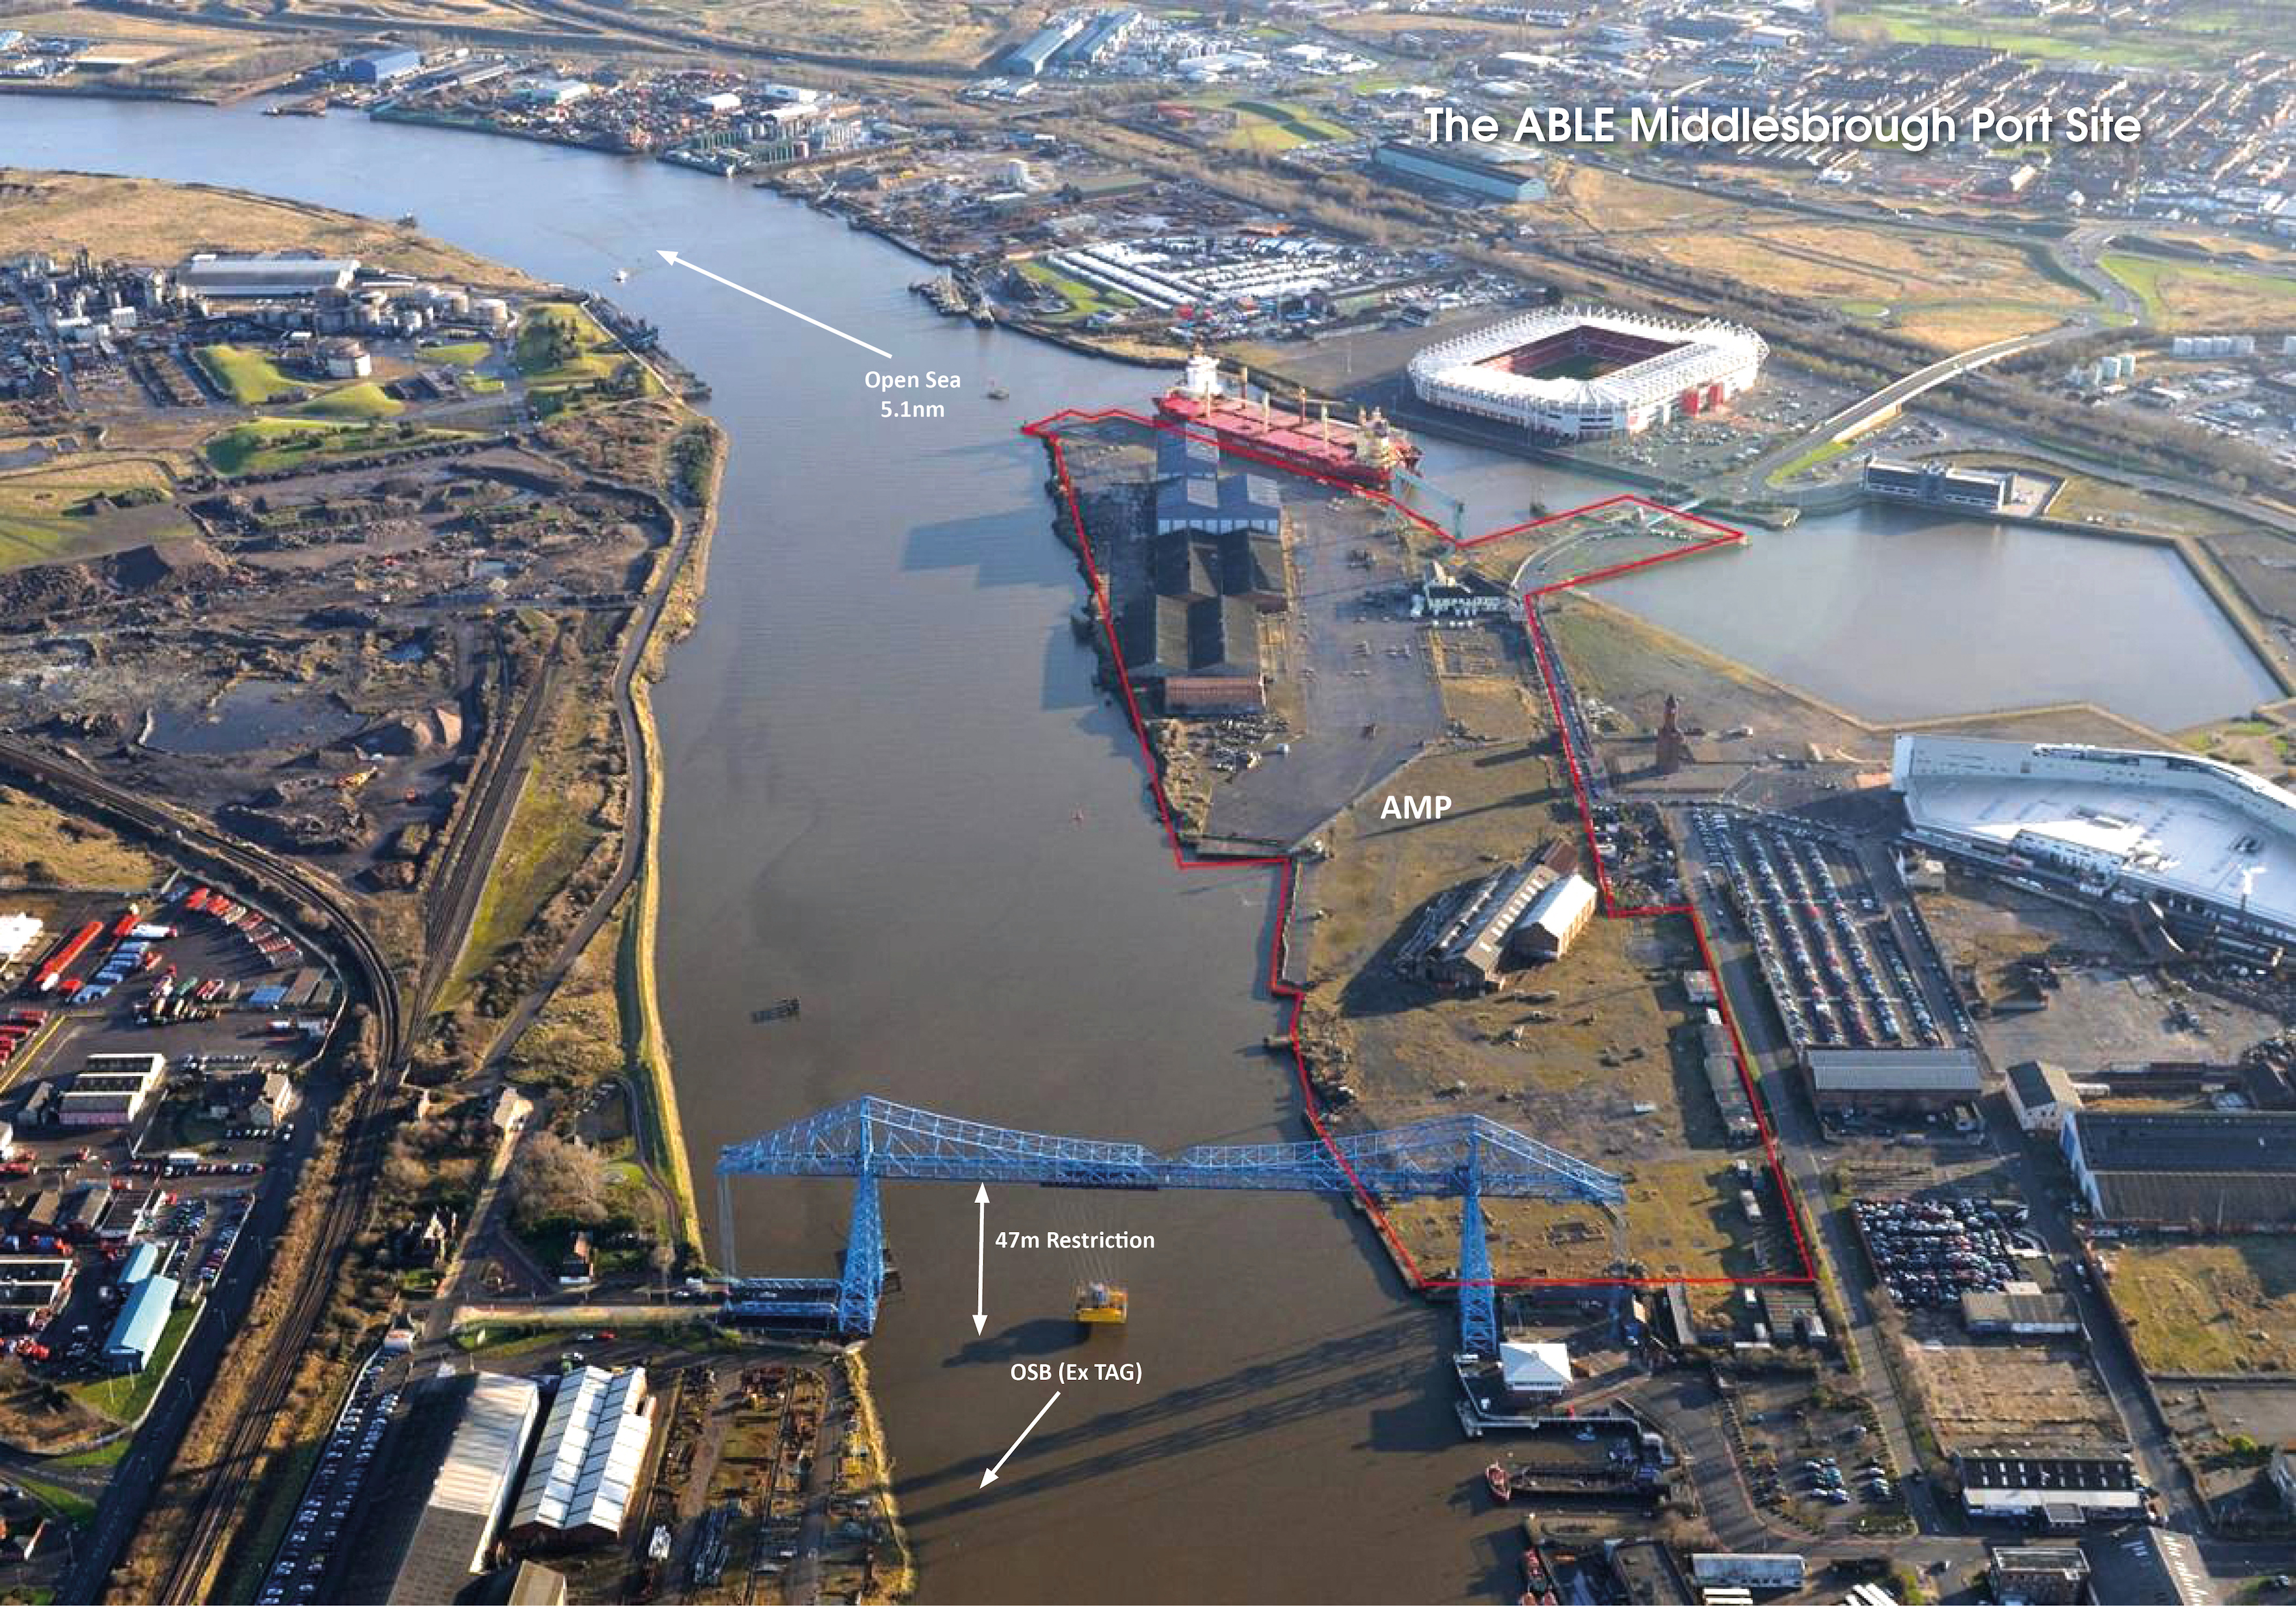 The Able Middlesbrough Port Site Aerial